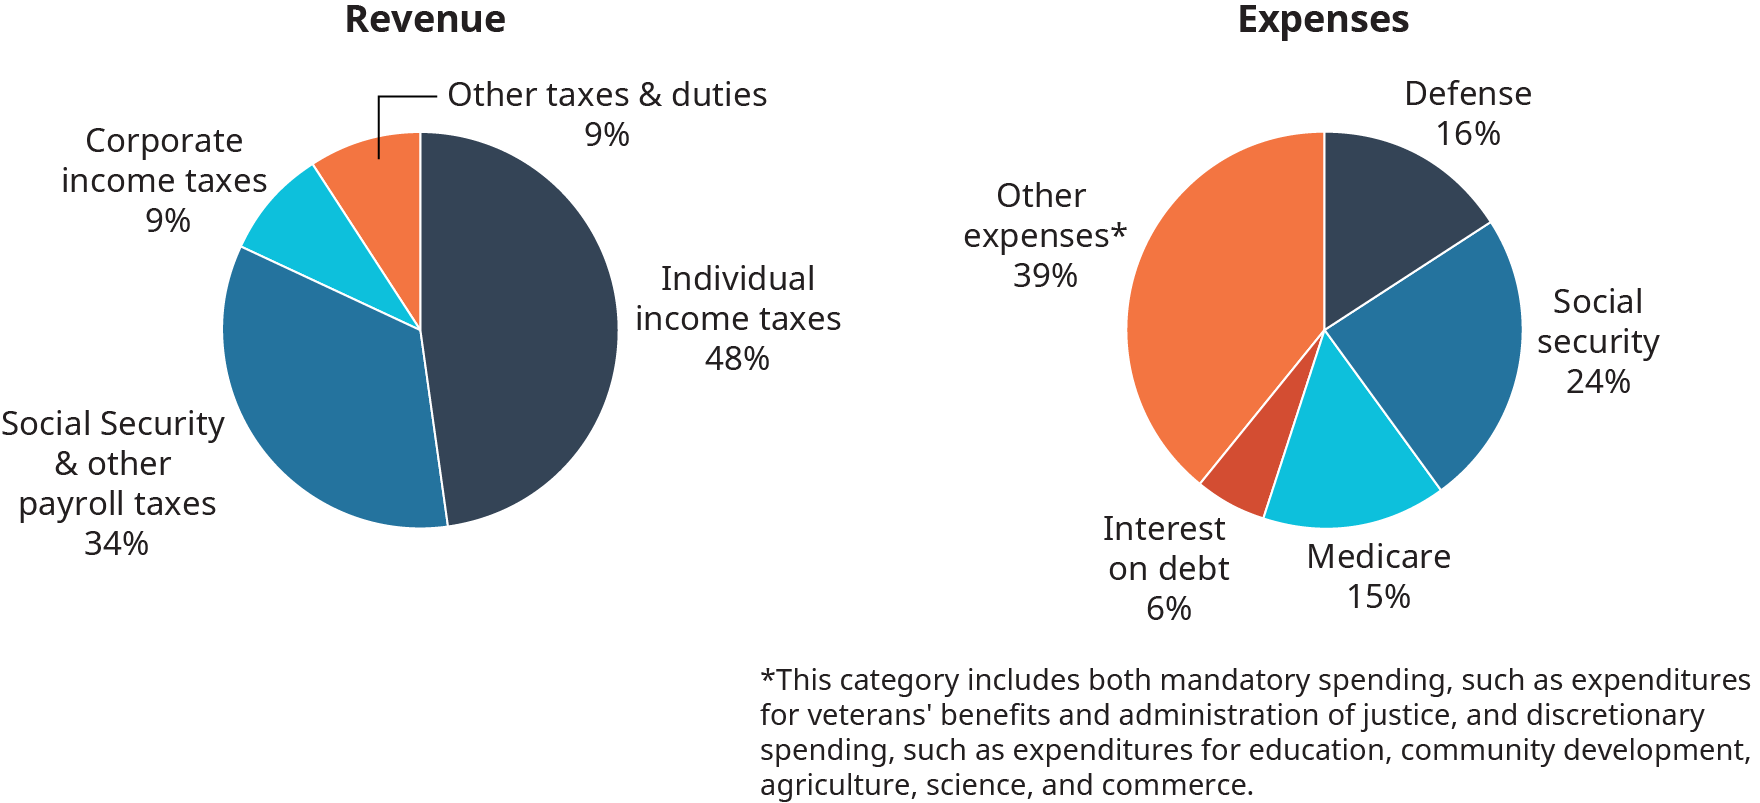 The pieces of the revenue pie chart, and percentages are as follows. Corporate income taxes, 9 percent. Other taxes and duties, 9 percent. Individual income taxes, 48 percent. Social security and other payroll taxes, 34 percent. The pieces of the expense pie chart, and percentages are as follows. Defense, 16 percent. Social security, 24 percent. Medicare, 15 percent. Interest on debt, 6 percent. Other expenses, 39 percent. Other expenses are labeled with an asterisk. The asterisk definition reads as follows. This category includes both mandatory spending, such as spending for veterans' benefits and administration of justice, and discretional spending, such as expenditures for education, community development, agriculture, science, and commerce.